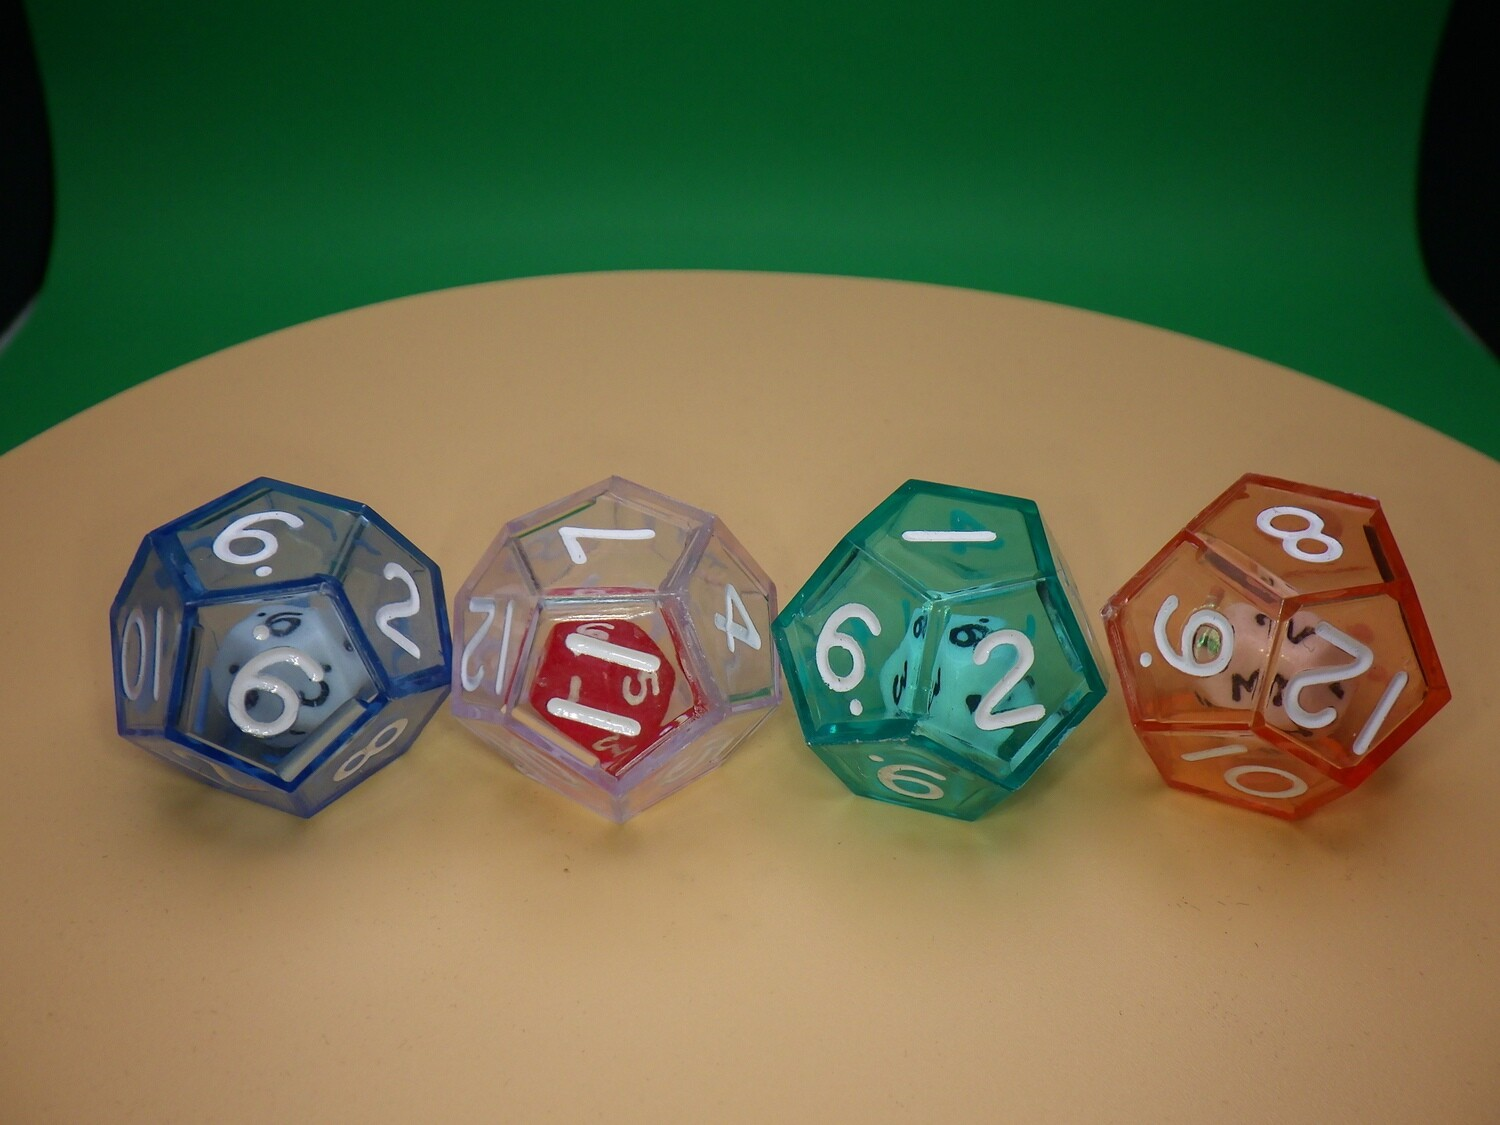 Double D12 - Small Twelve Sided Die in Larger Transparent Twelve Sided RPG Tabletop Gaming Roleplay CCG Board Card Games